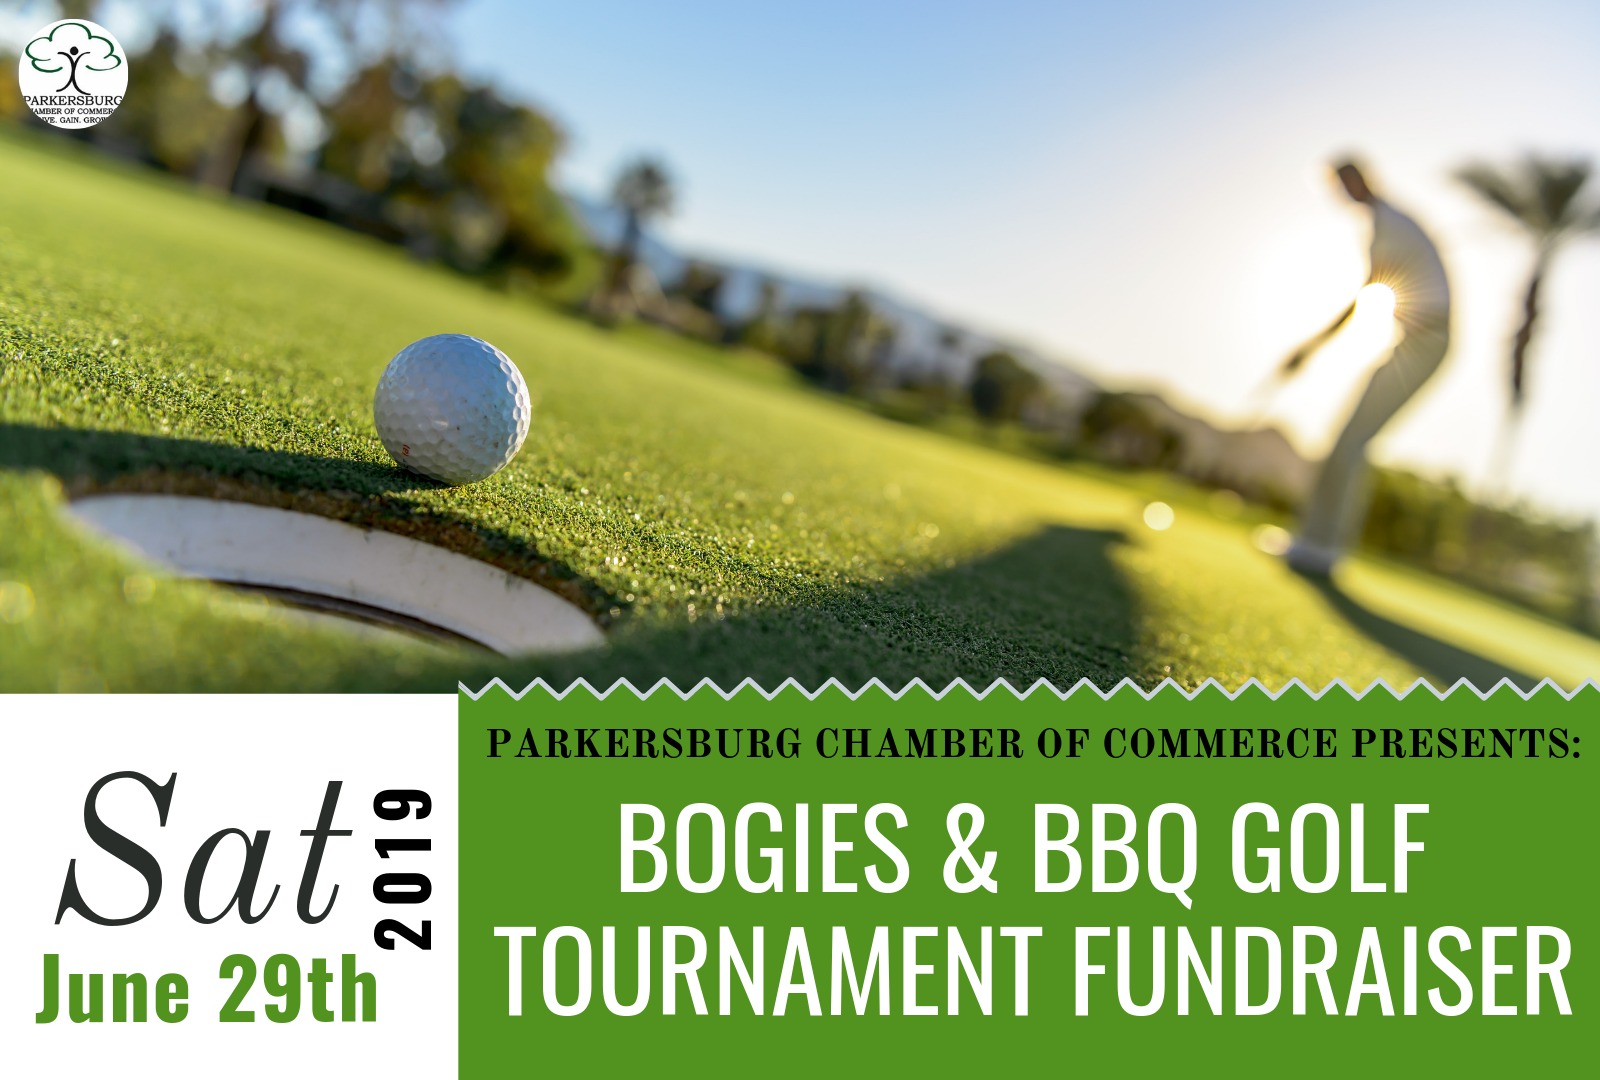 Parkersburg Chamber Bogies & BBQ Golf Tournament Fundraiser